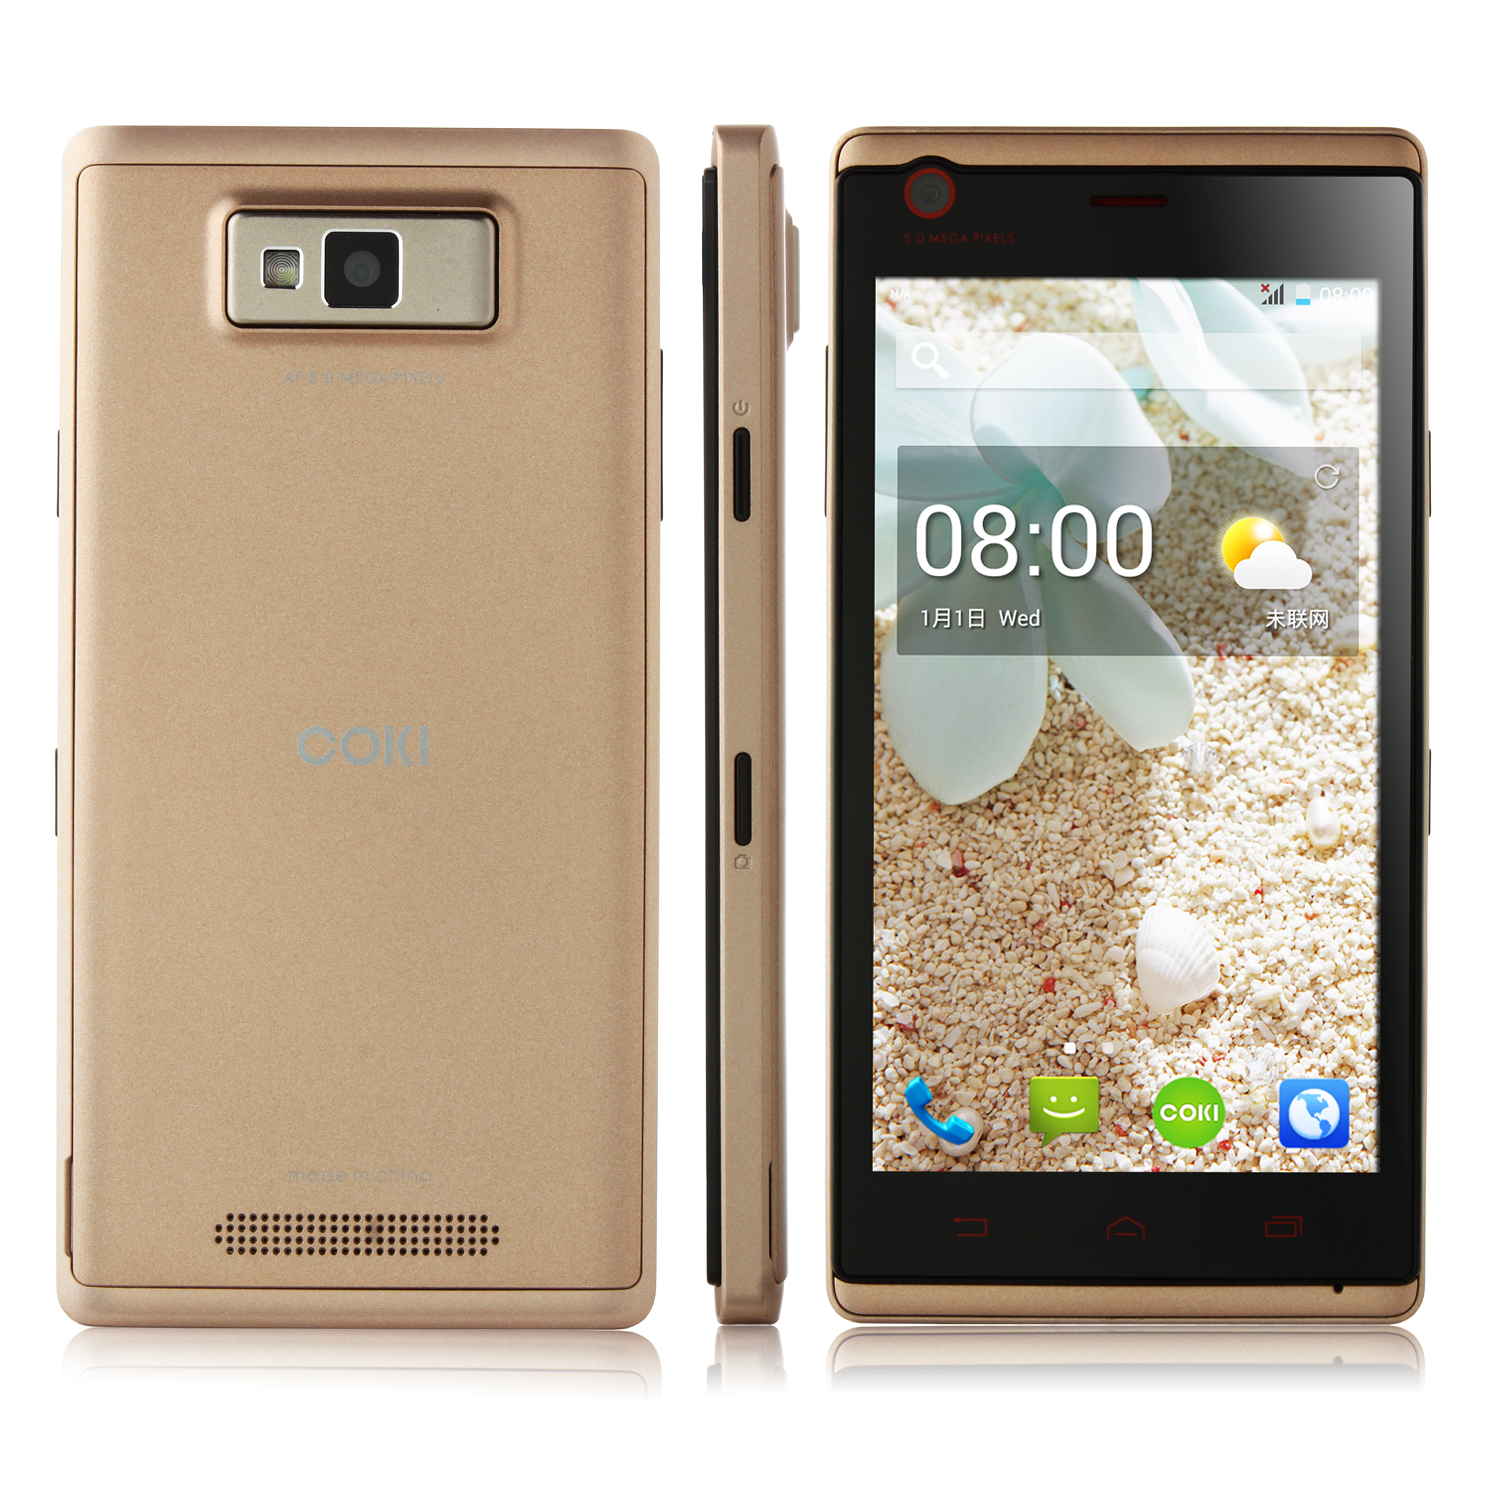 COKI C10 Smartphone MTK6582 Quad Core 1GB 4GB 4.5 Inch QHD Screen Gold